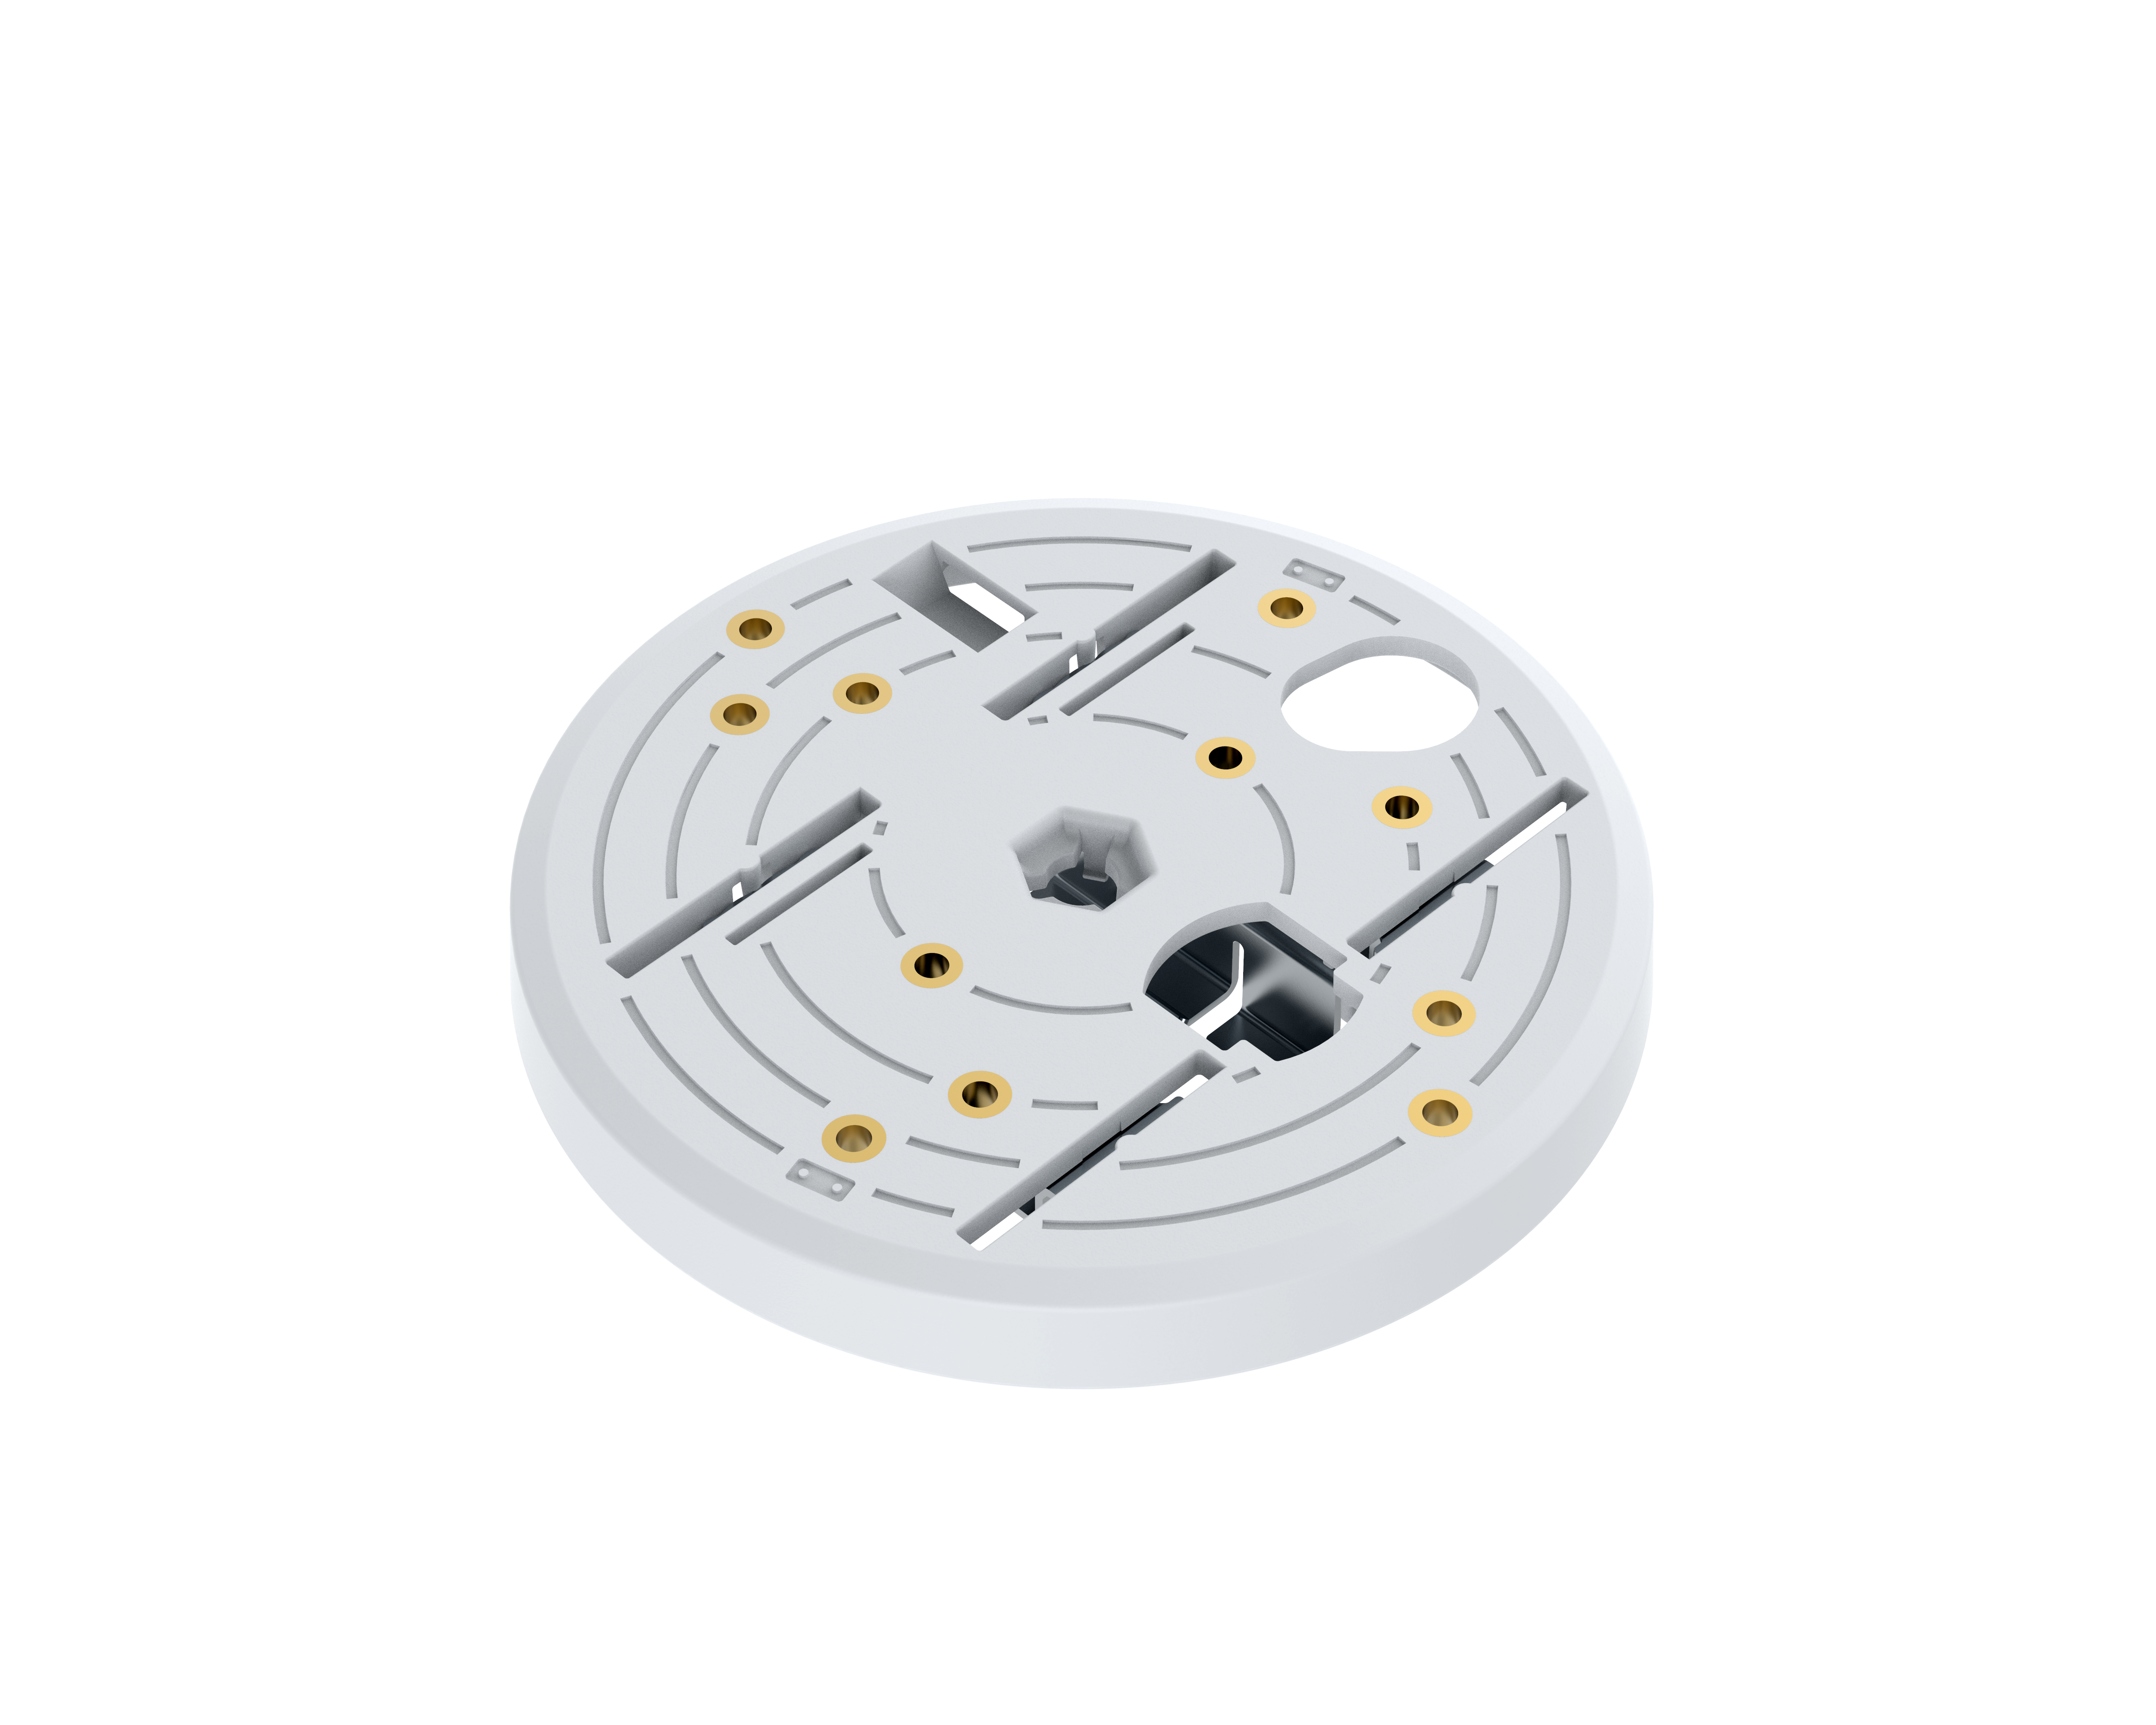 AXIS T91A23 Tile Grid Ceiling Mount